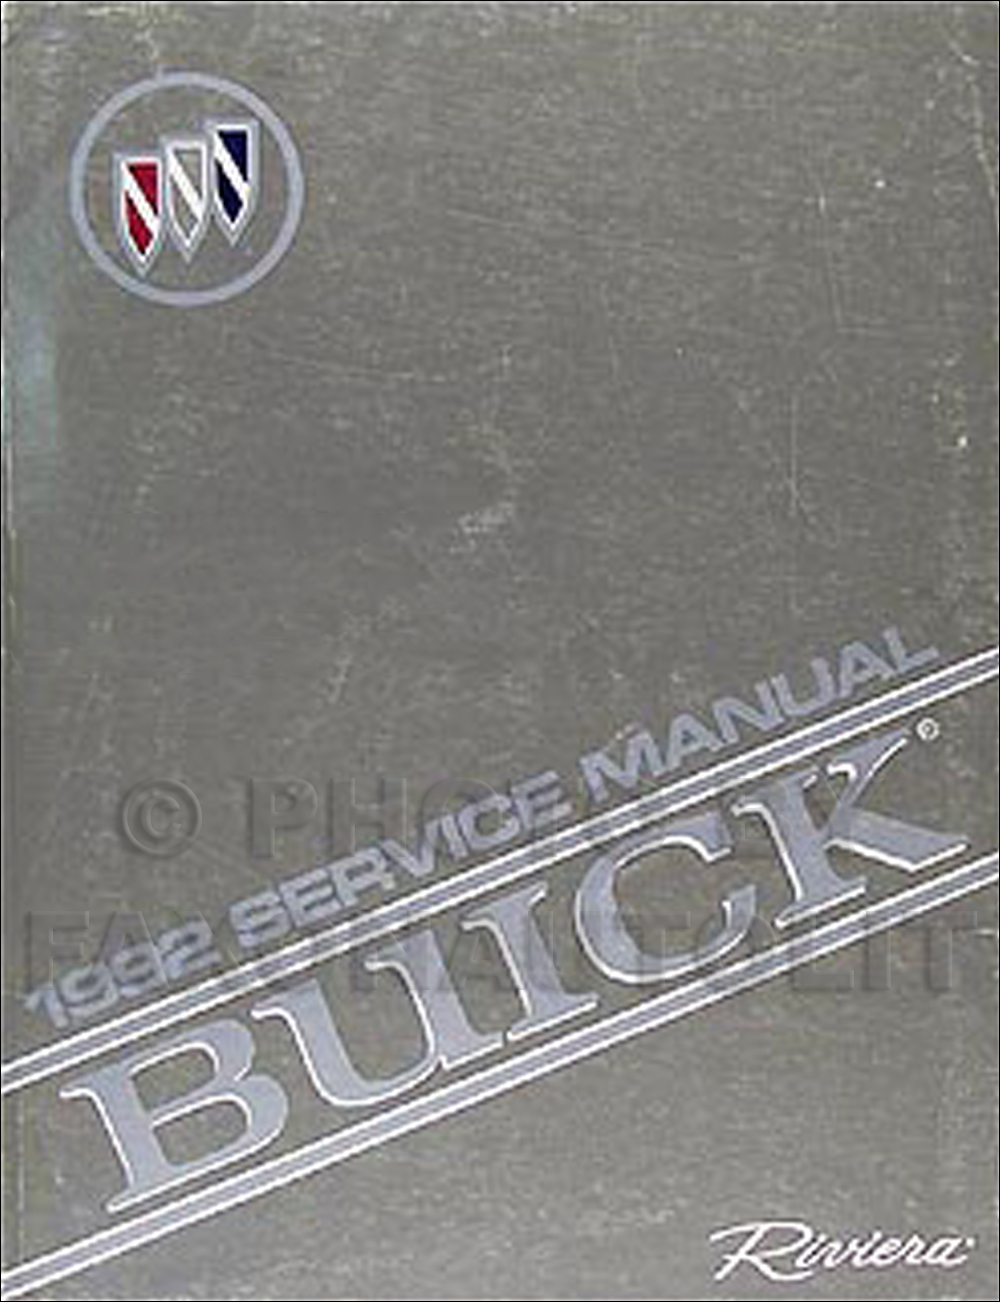 1992 Buick Riviera Shop Manual Original